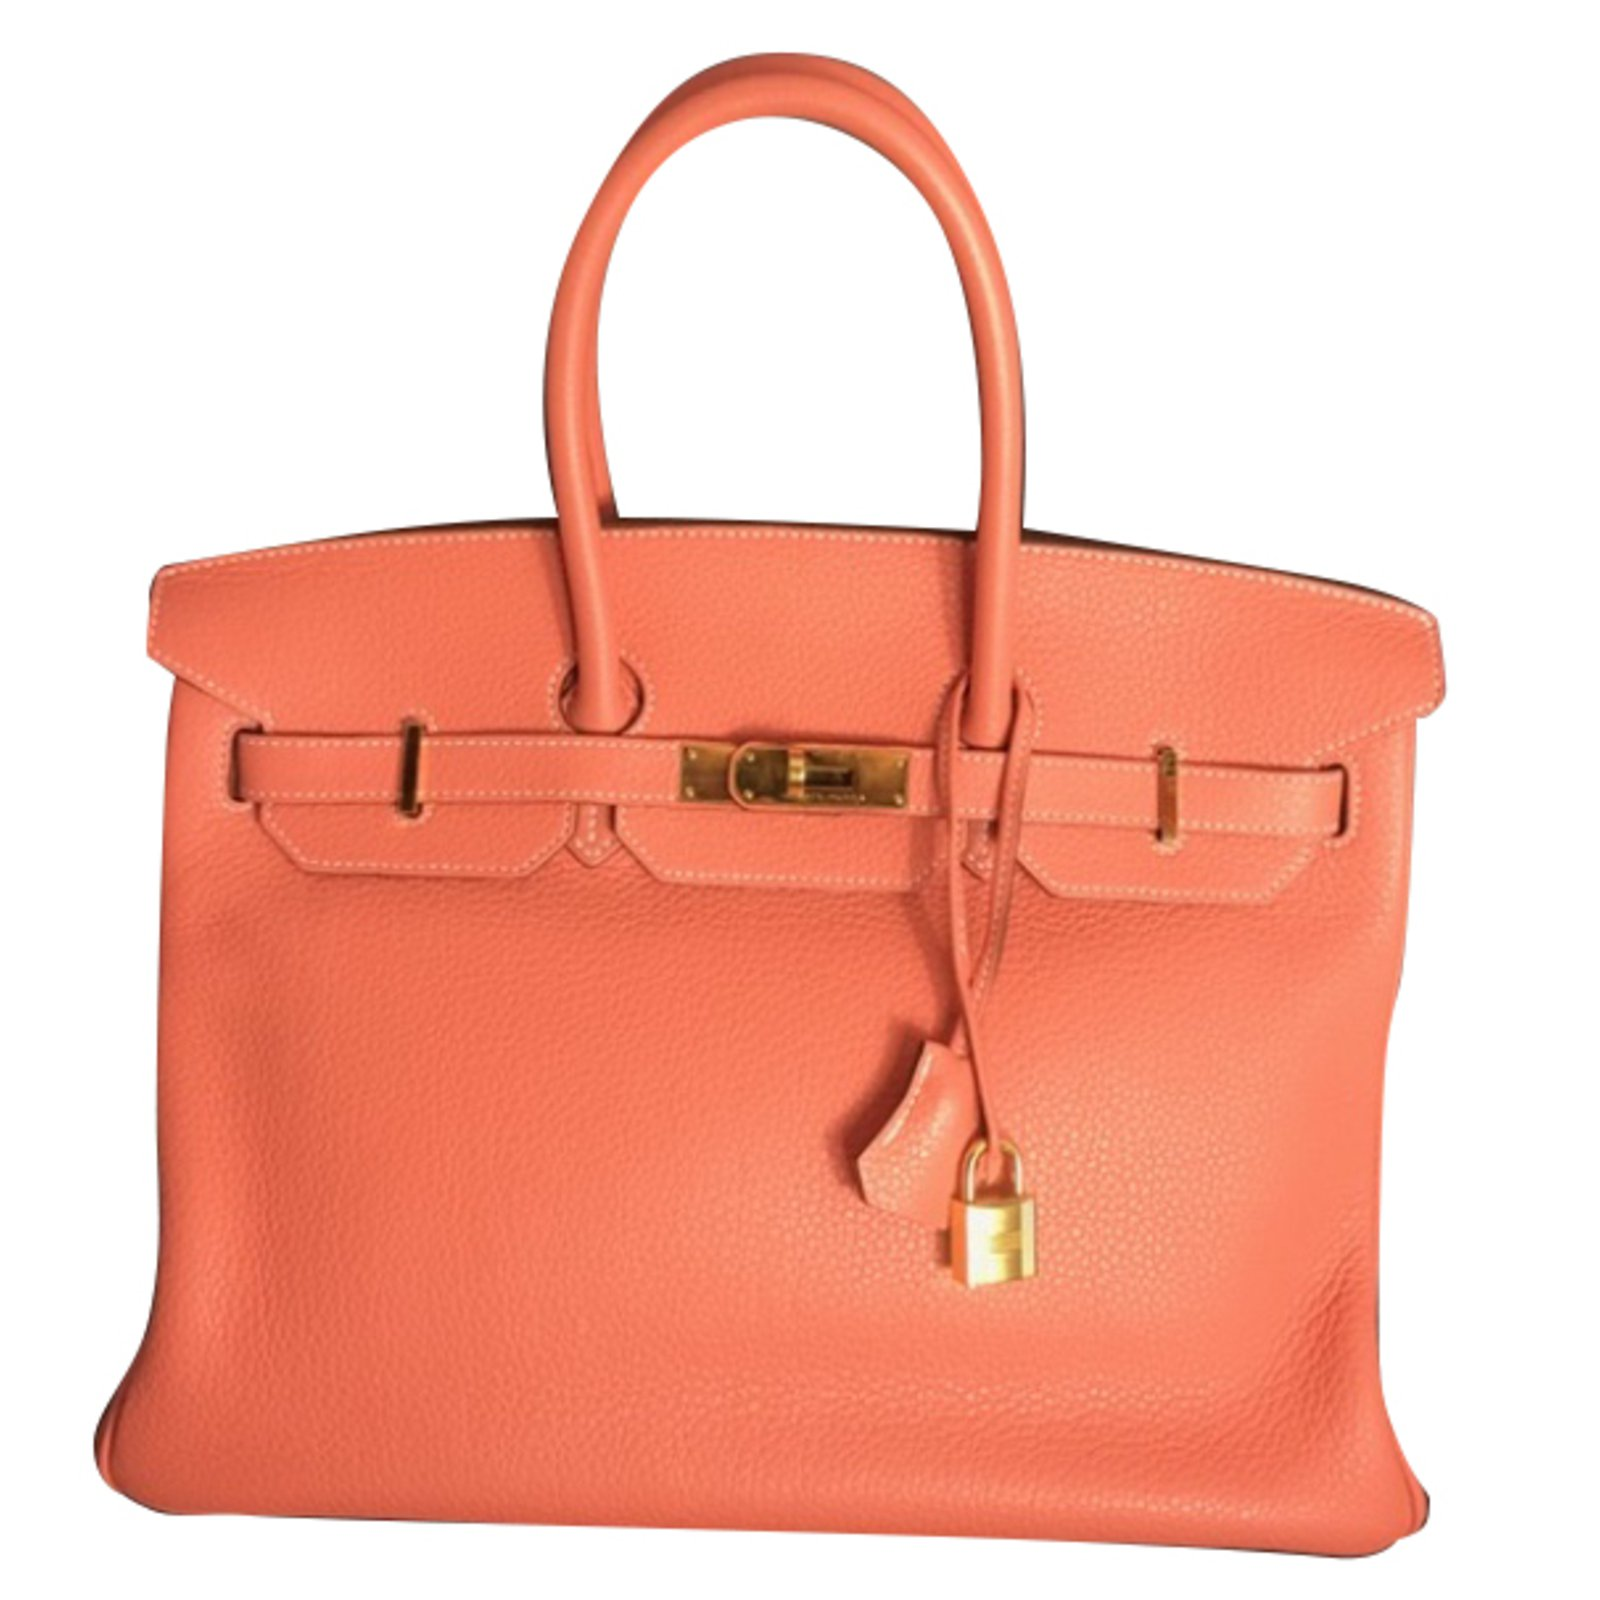 Excellent Hermes Birkin Handbags As Chic Bag For Women | More Fashionable